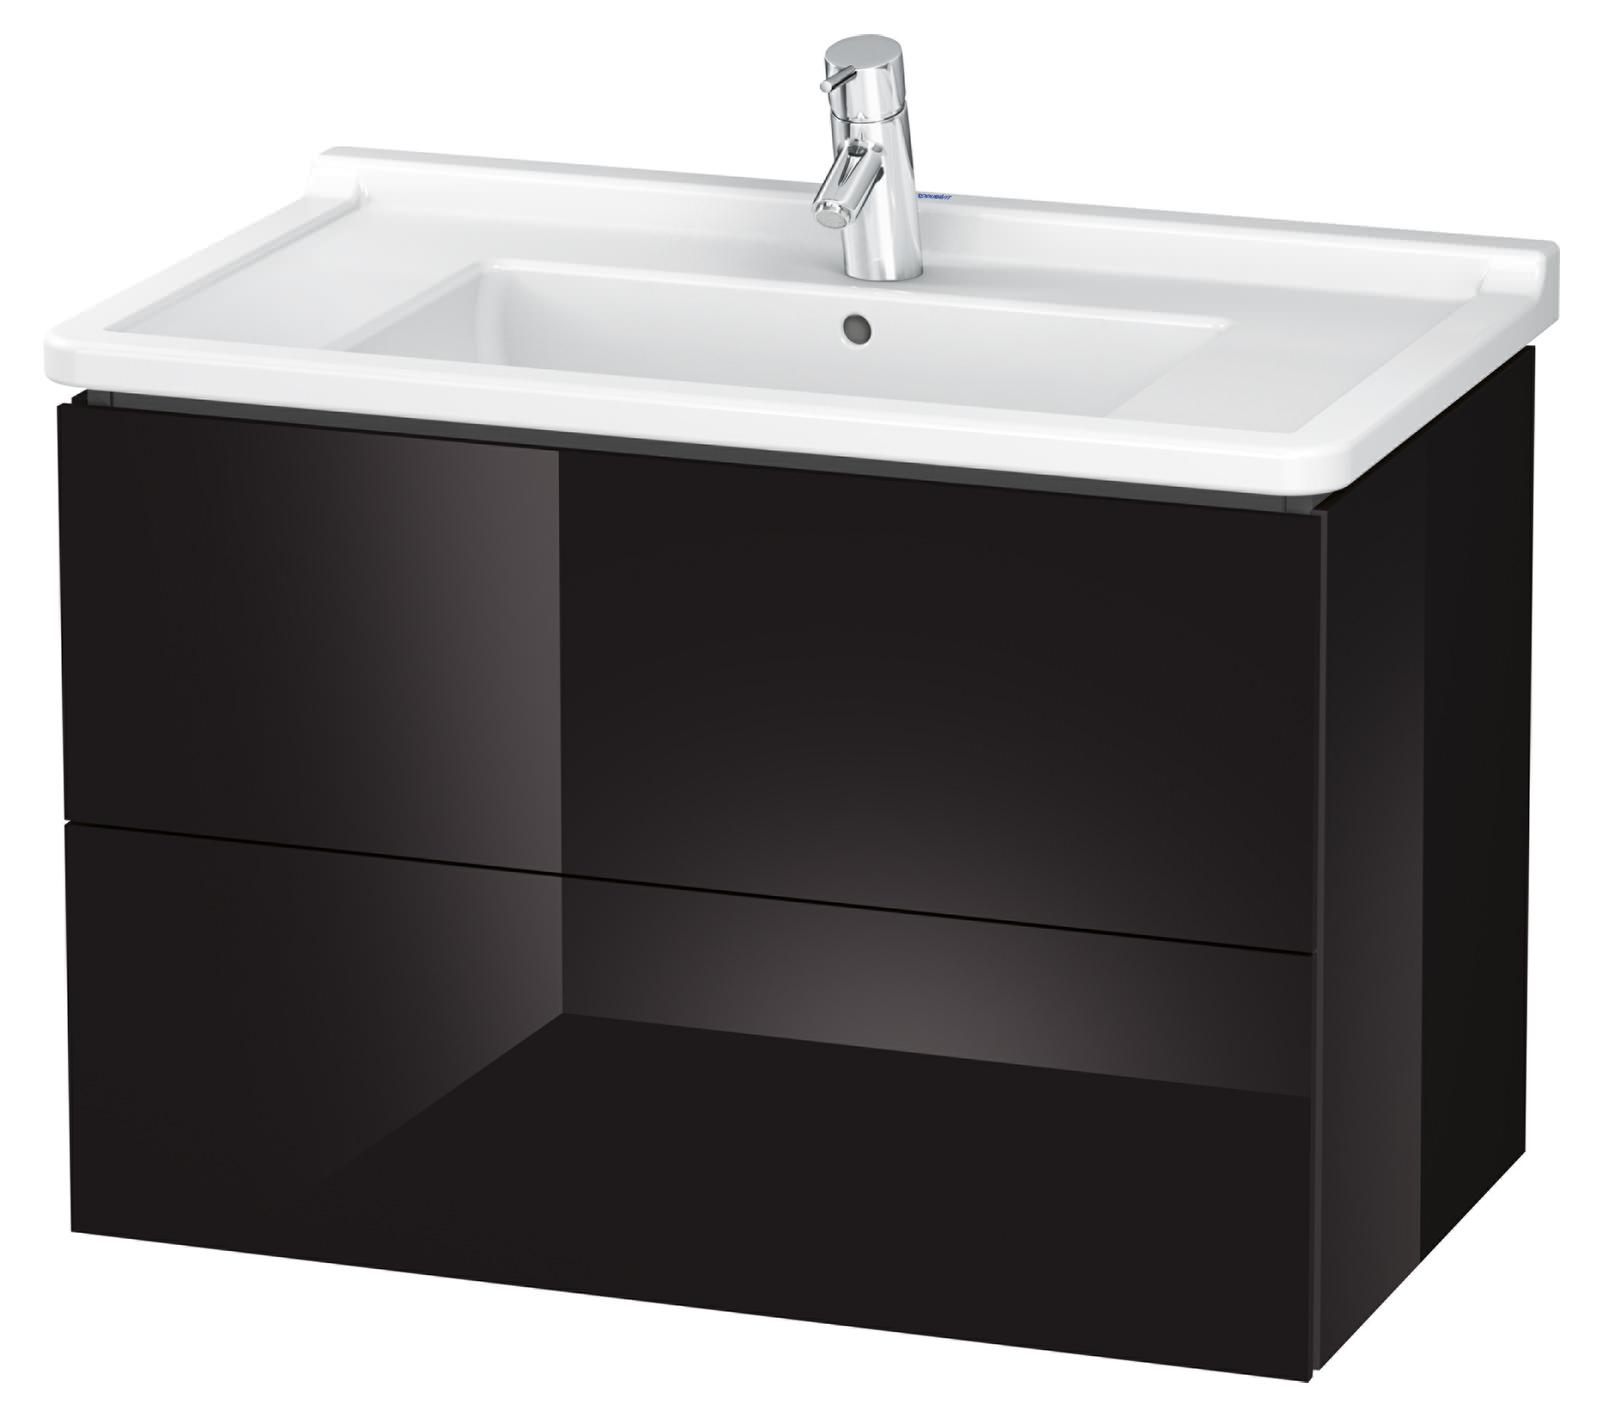 duravit l cube 820mm 2 drawer wall mounted vanity unit with starck 3 basin. Black Bedroom Furniture Sets. Home Design Ideas